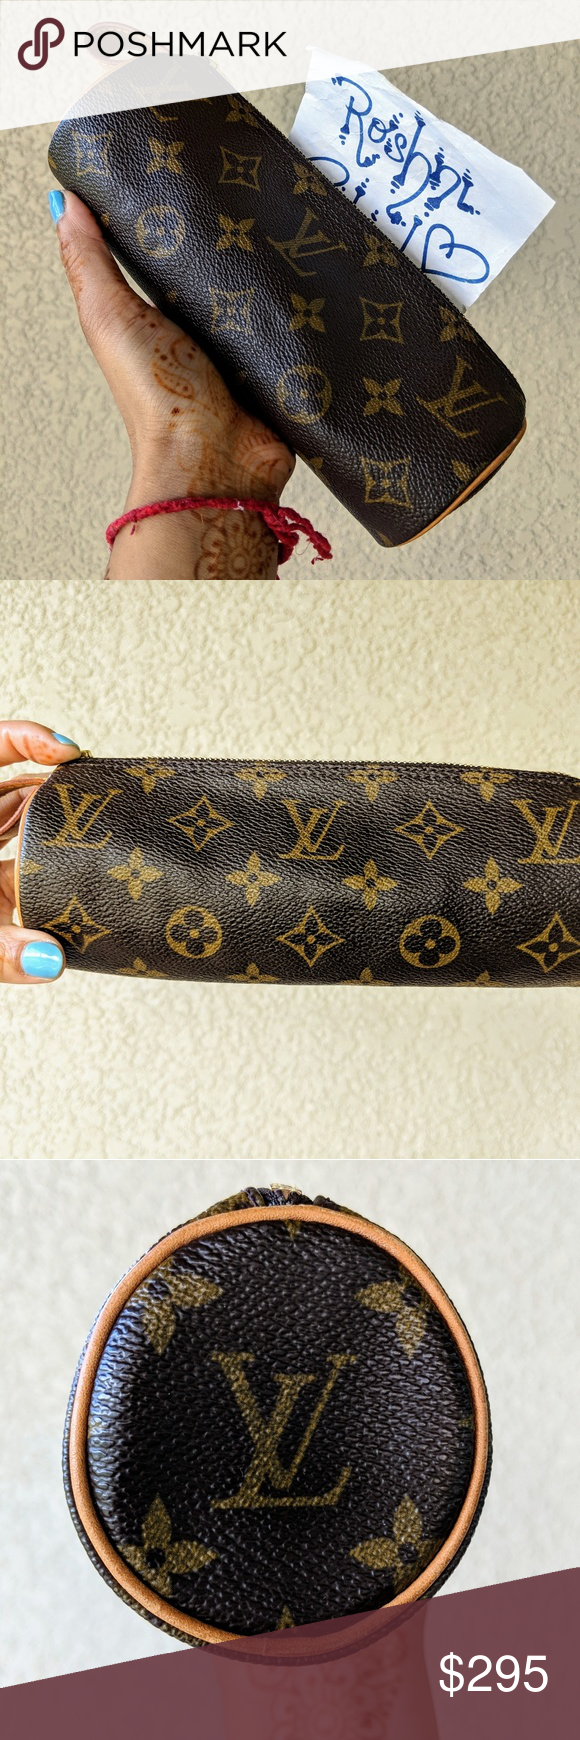 LOUIS VUITTON Monogram Etui Pencil Cosmetic Case This rare